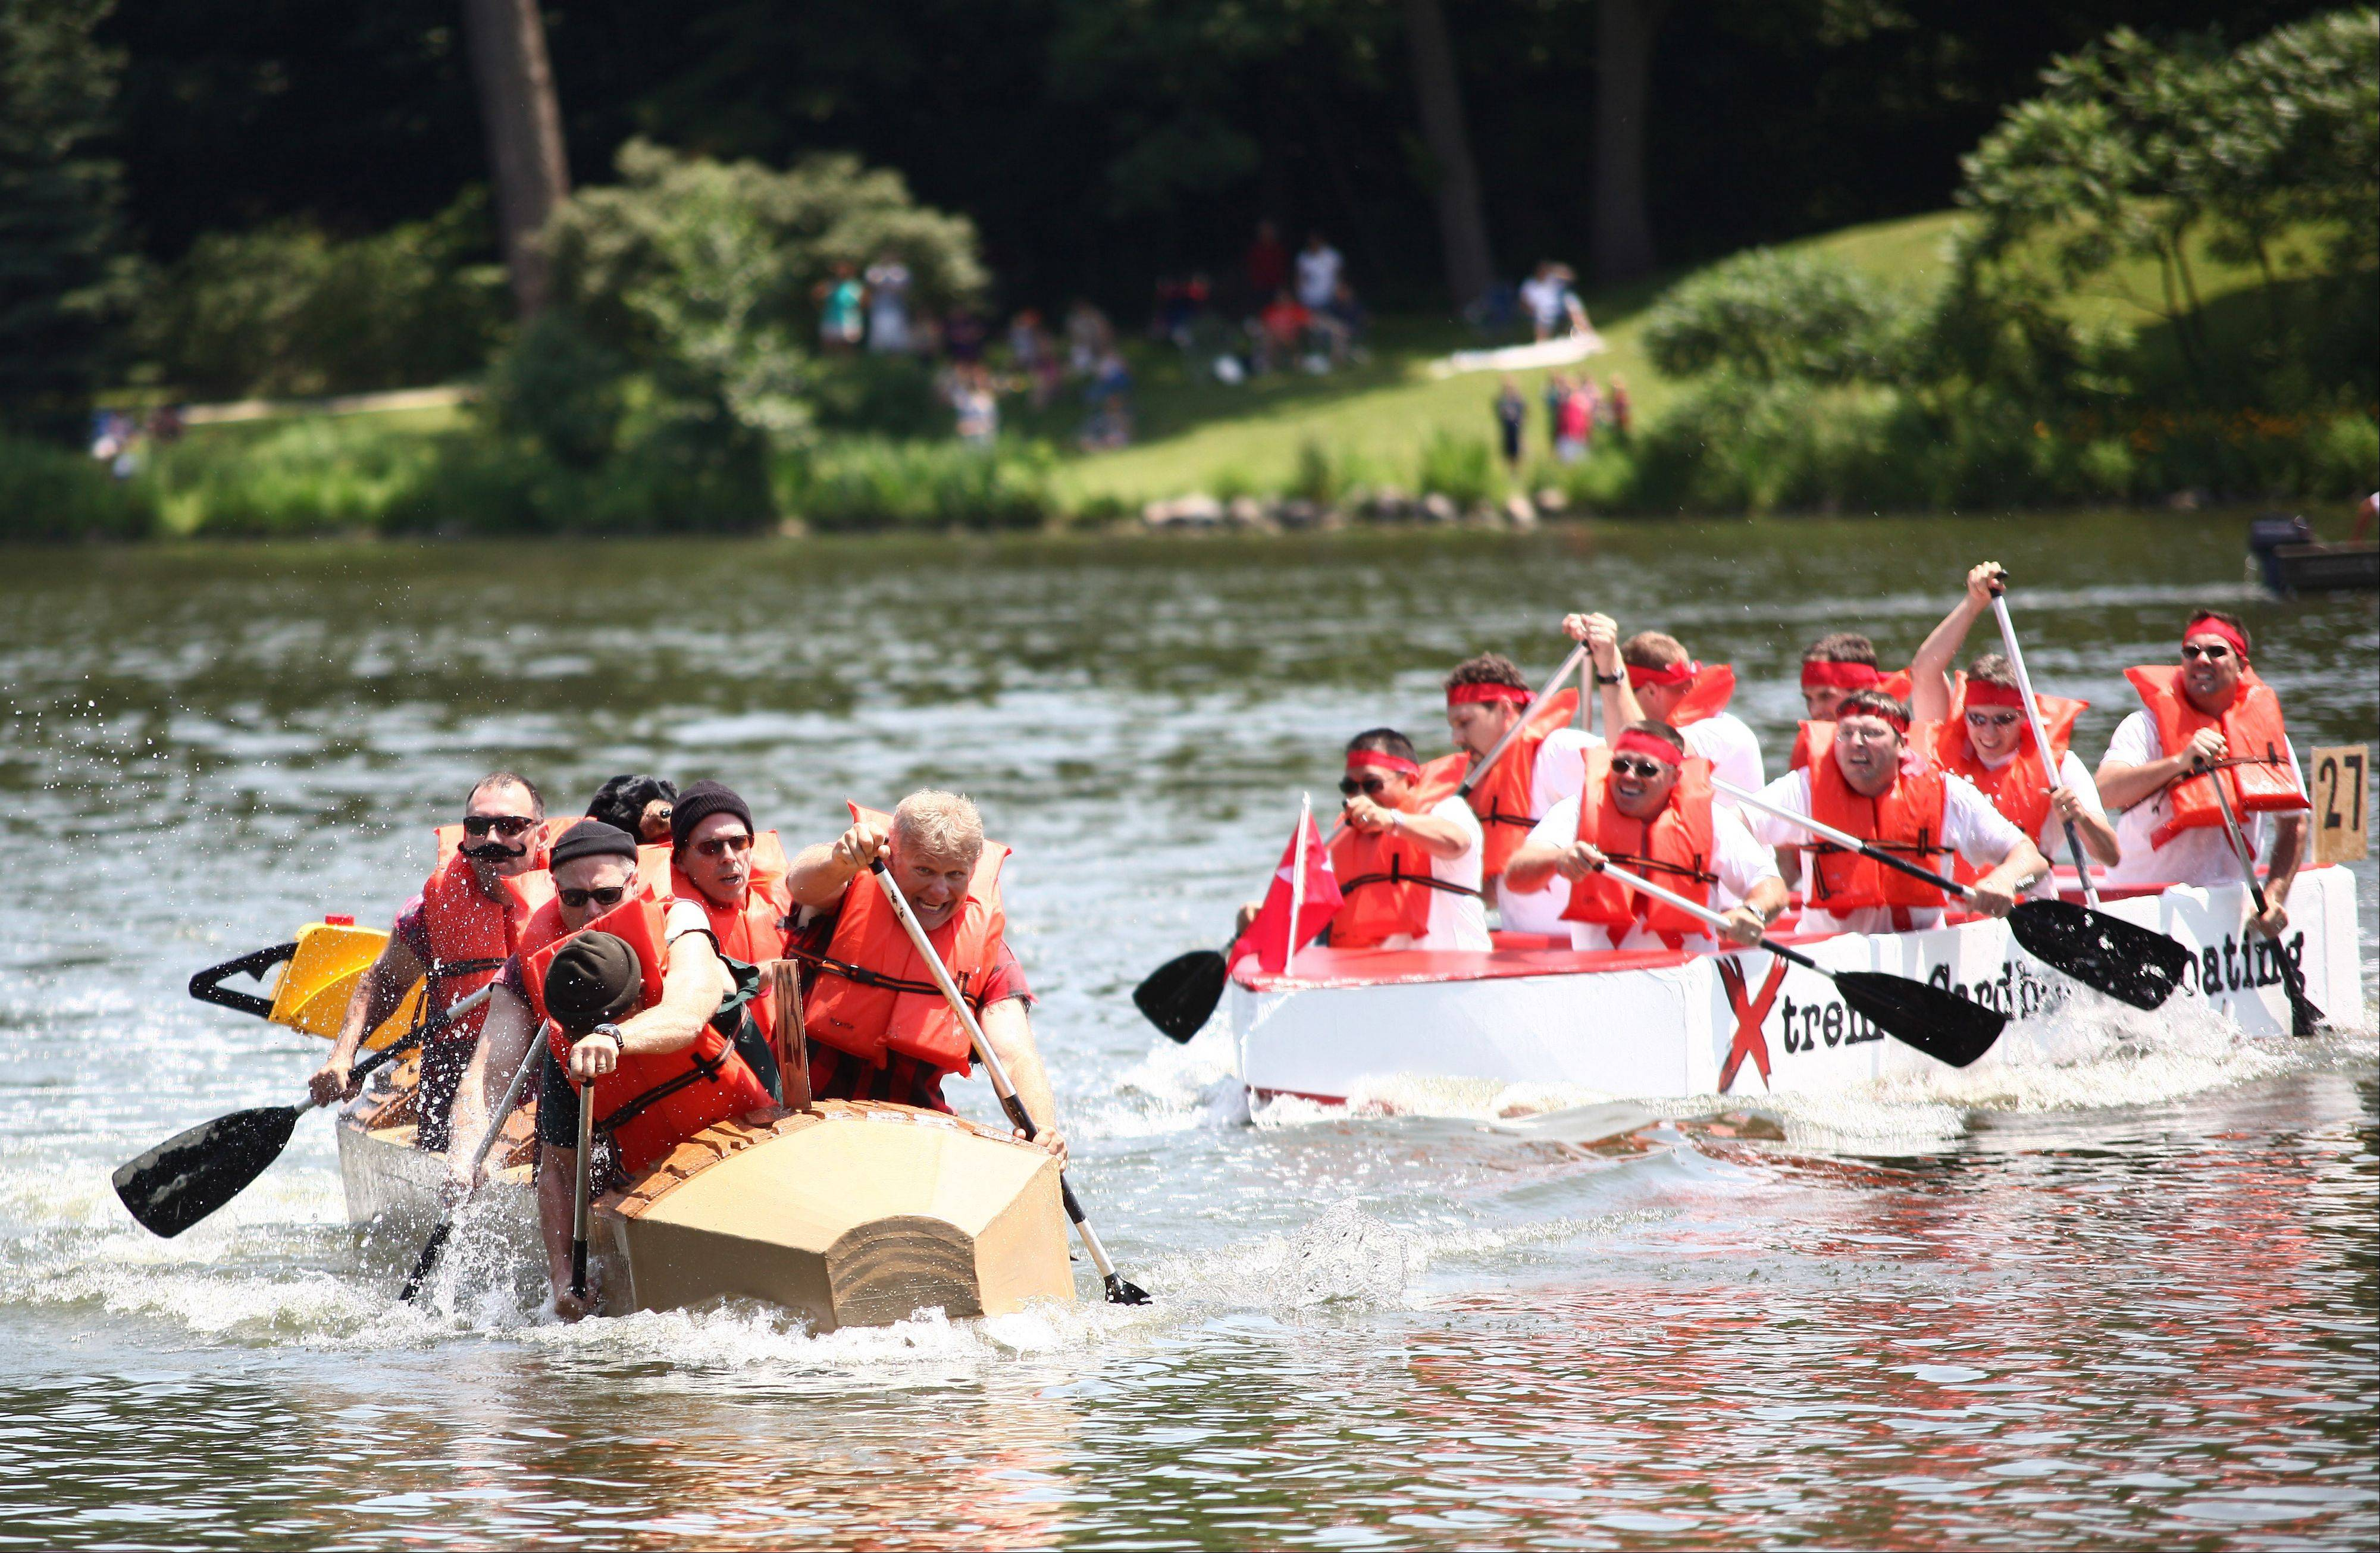 Crews will face off for the 18th year at the annual Lake Ellyn Cardboard Regatta in Glen Ellyn on Saturday, July 2. Races begin at 12 p.m. with separate categories for beginners, intermediate and advanced seafarers.